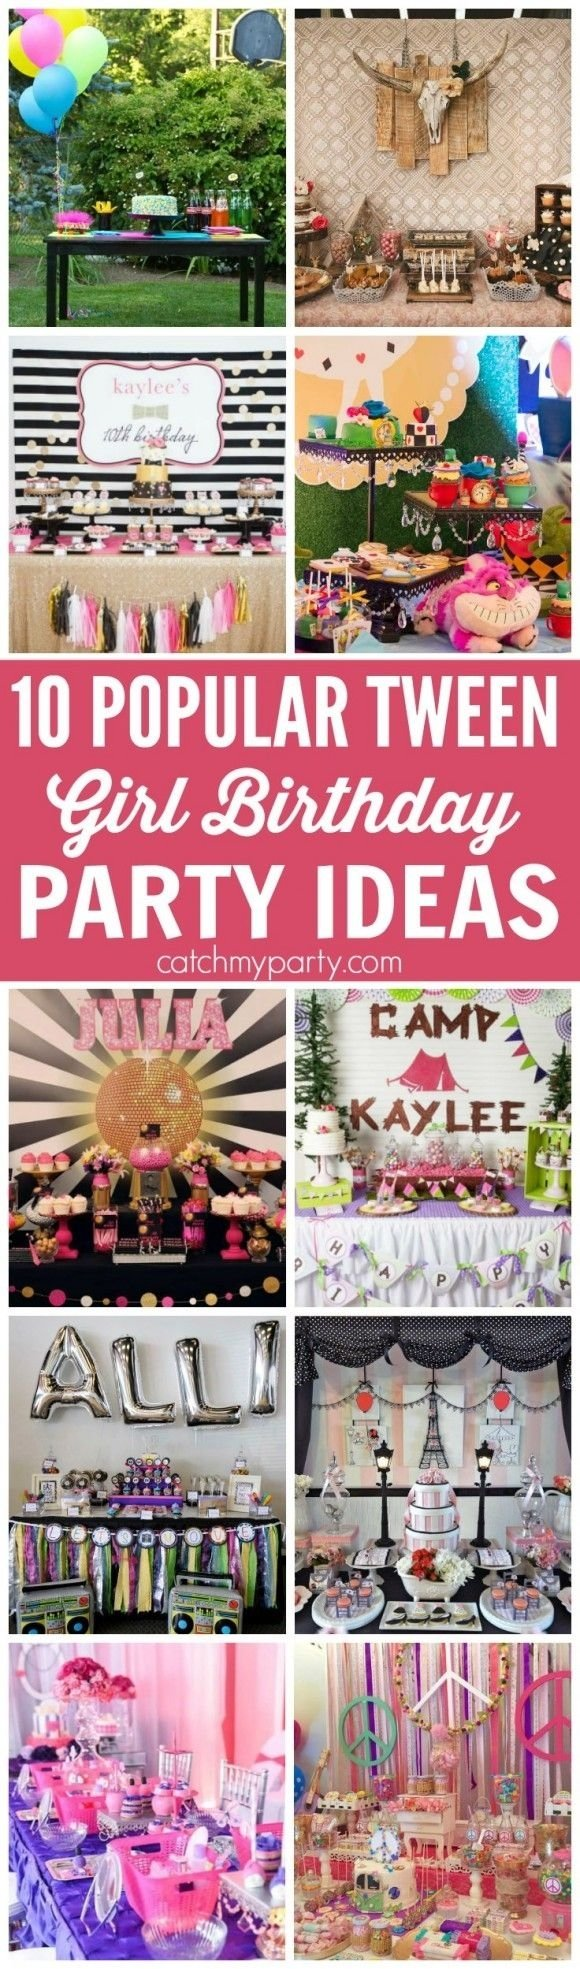 10 Stylish Fun Birthday Ideas For Girls